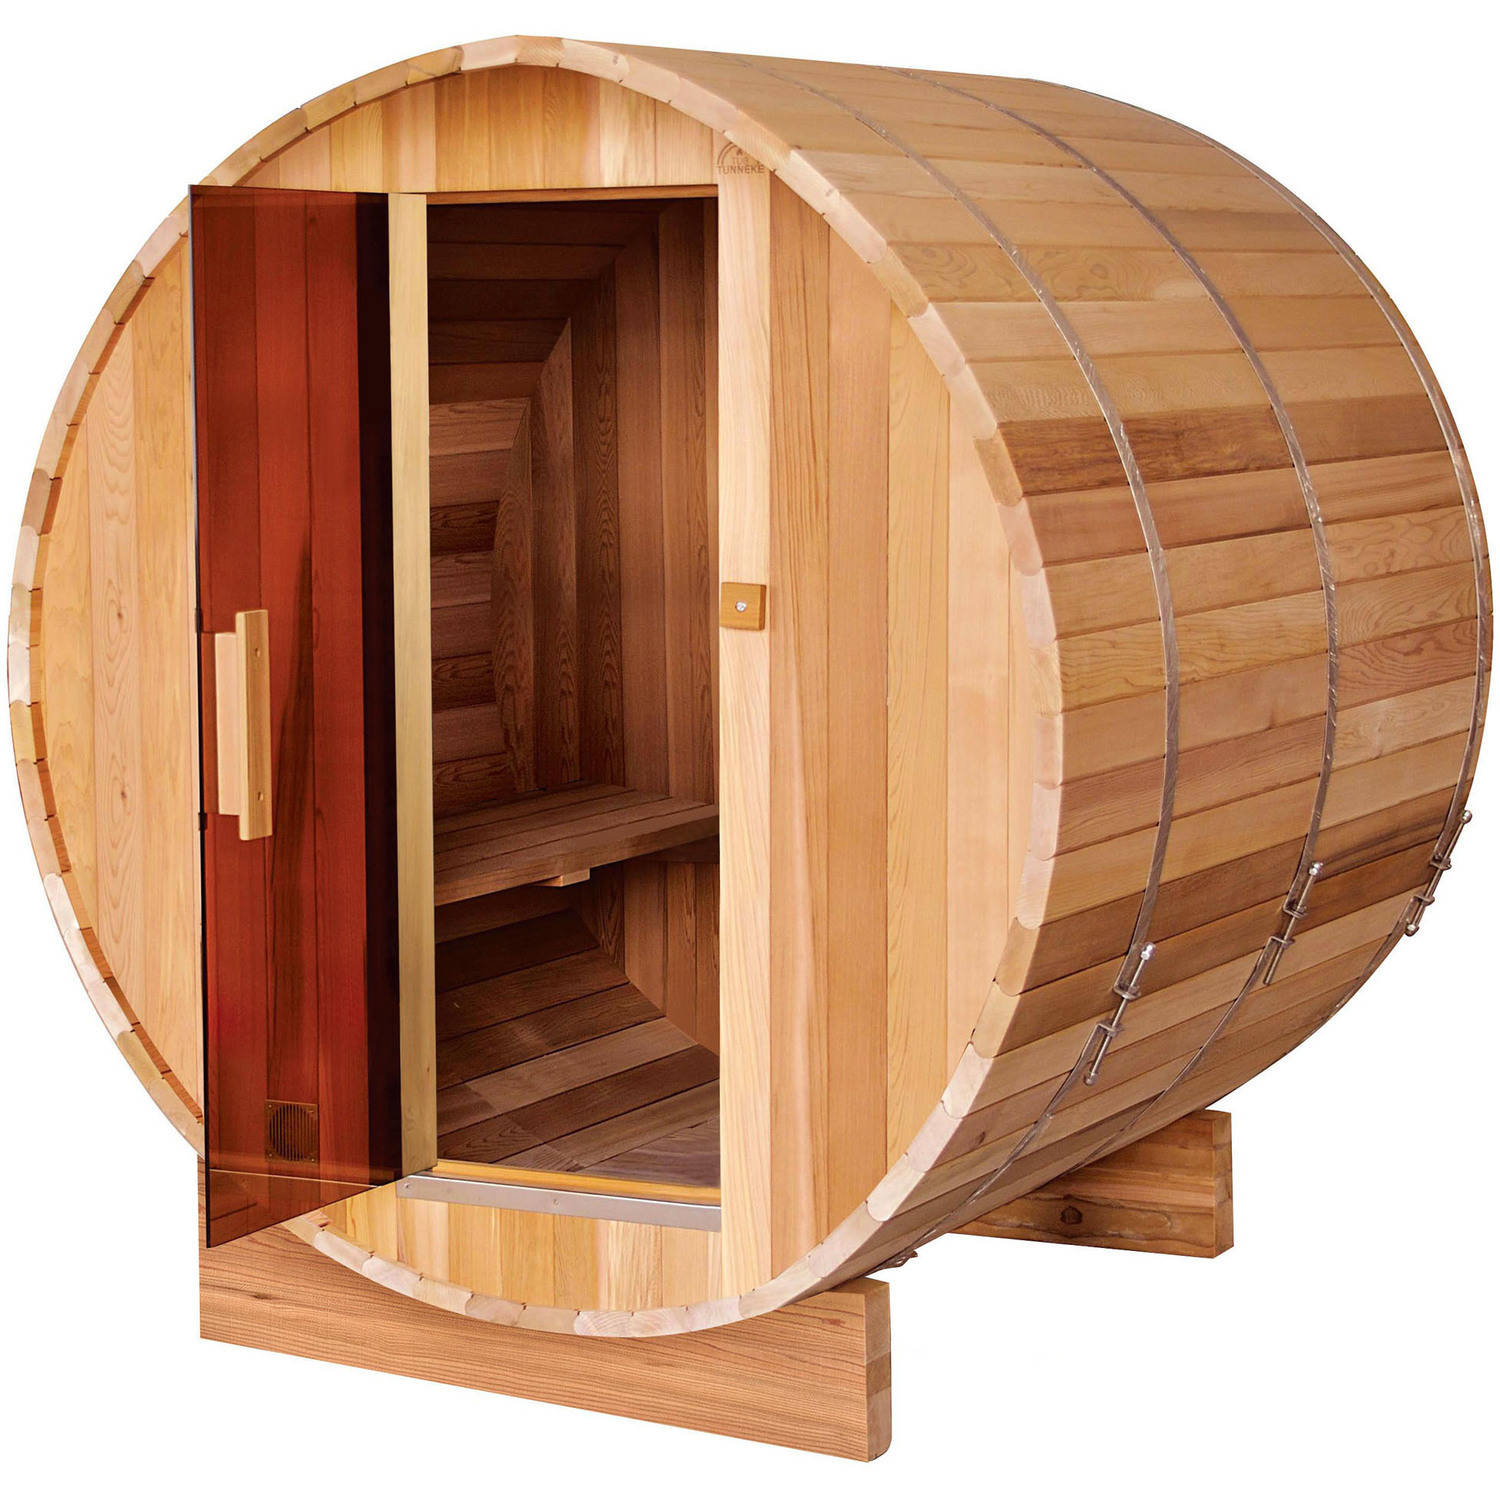 ALEKO SB8CEDARCP 8 Person Outdoor and Indoor Rustic Western Red Cedar Wet Dry Barrel Sauna... by ALEKO